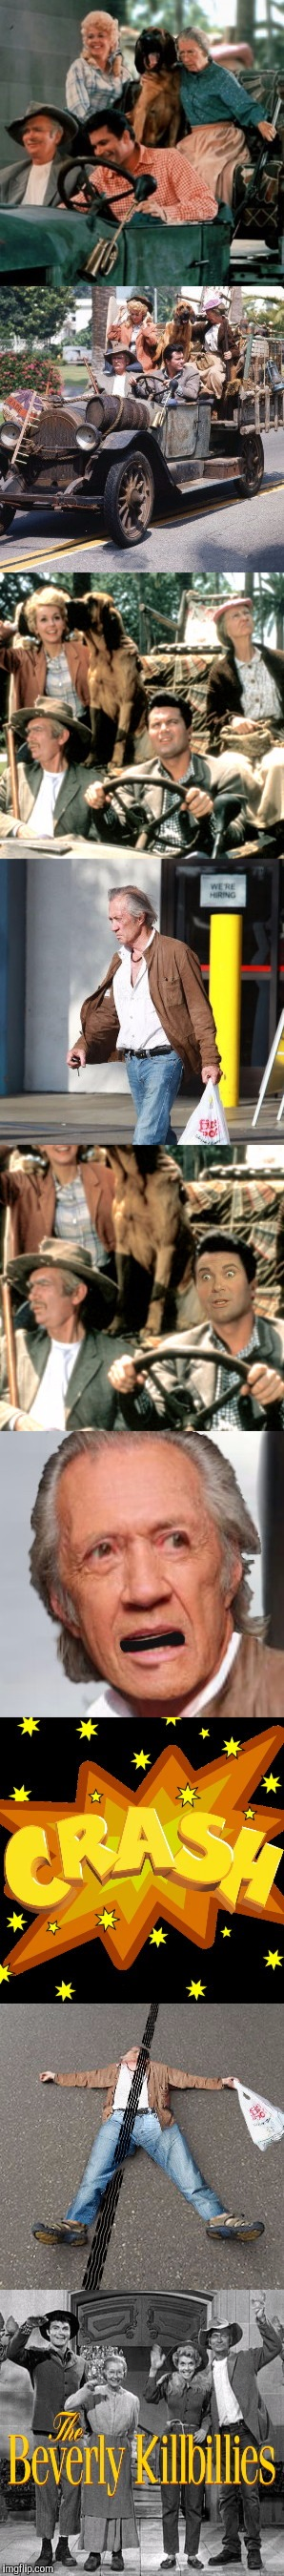 ROADKILL STEW? | . | image tagged in beverly hillbillies,kill bill,funny | made w/ Imgflip meme maker